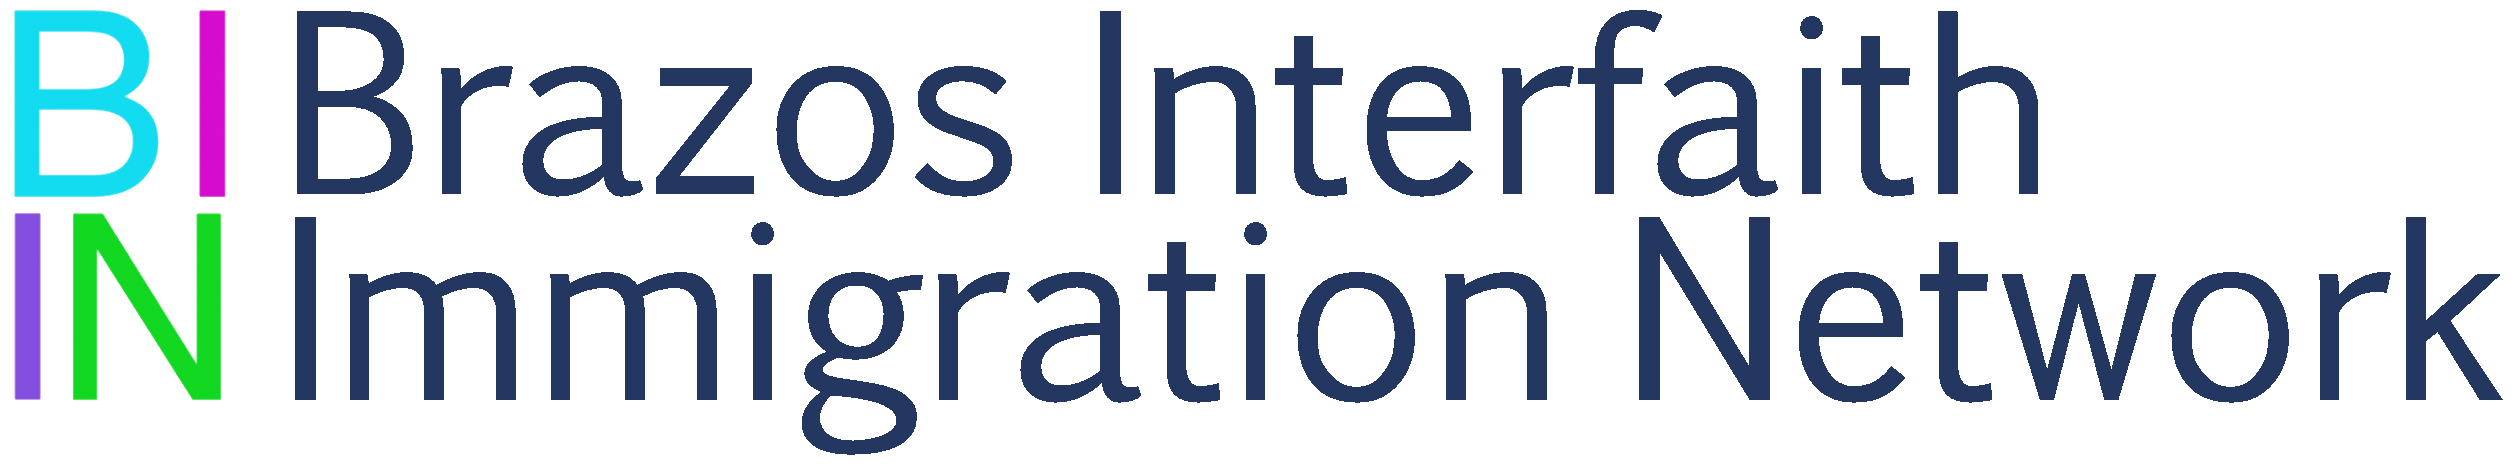 Brazos Interfaith Immigration Network – BIIN's mission is to